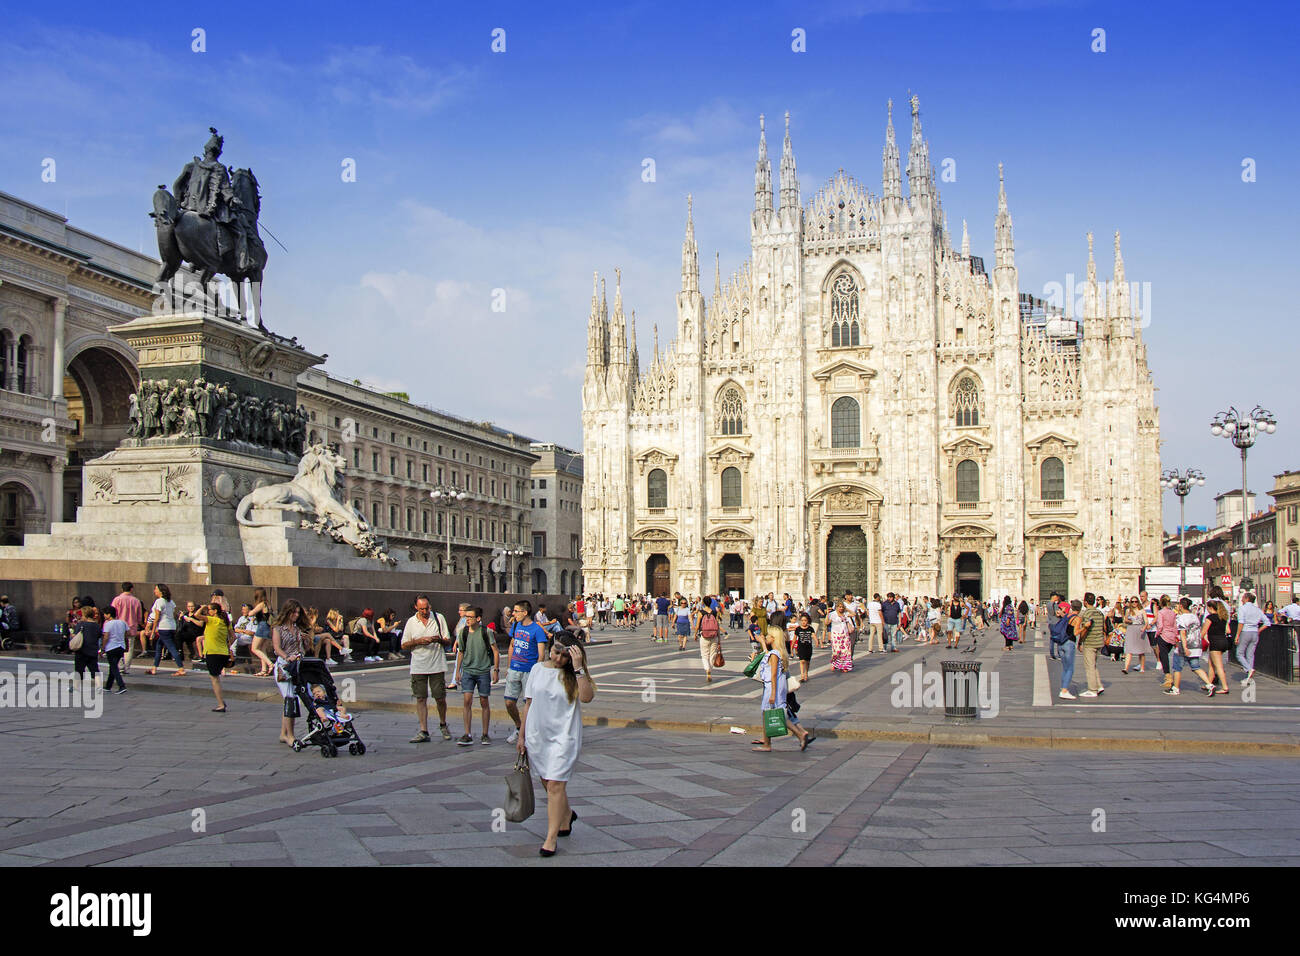 MILAN, ITALY - JUNE 27: Piazza di Duomo di Milano on June 27, 2017. A lot of tourists in front of the Cathedral - Stock Image